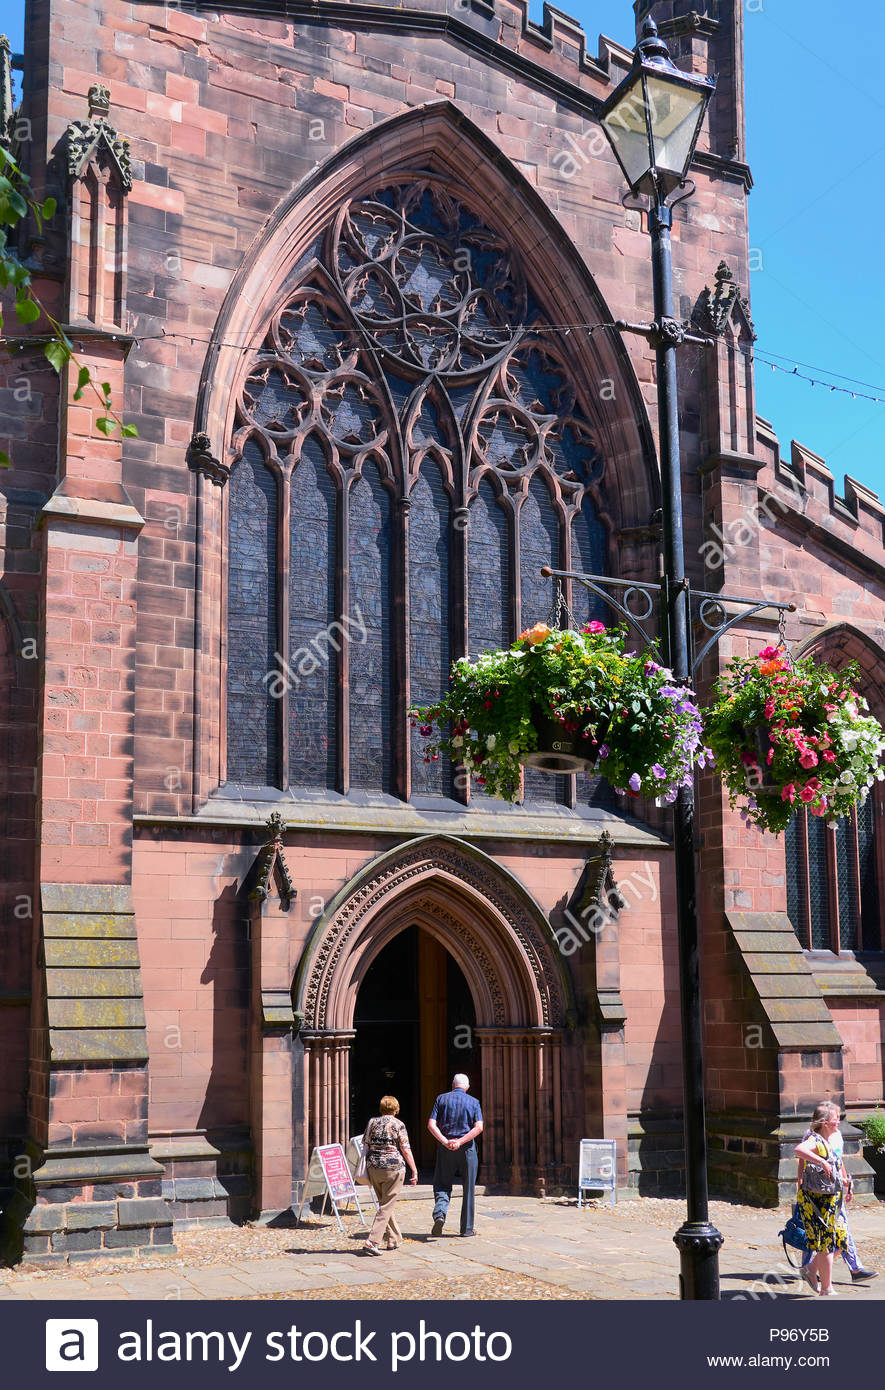 St Mary's church in the centre of the market town of Nantwich, Cheshire England uk - Stock Image